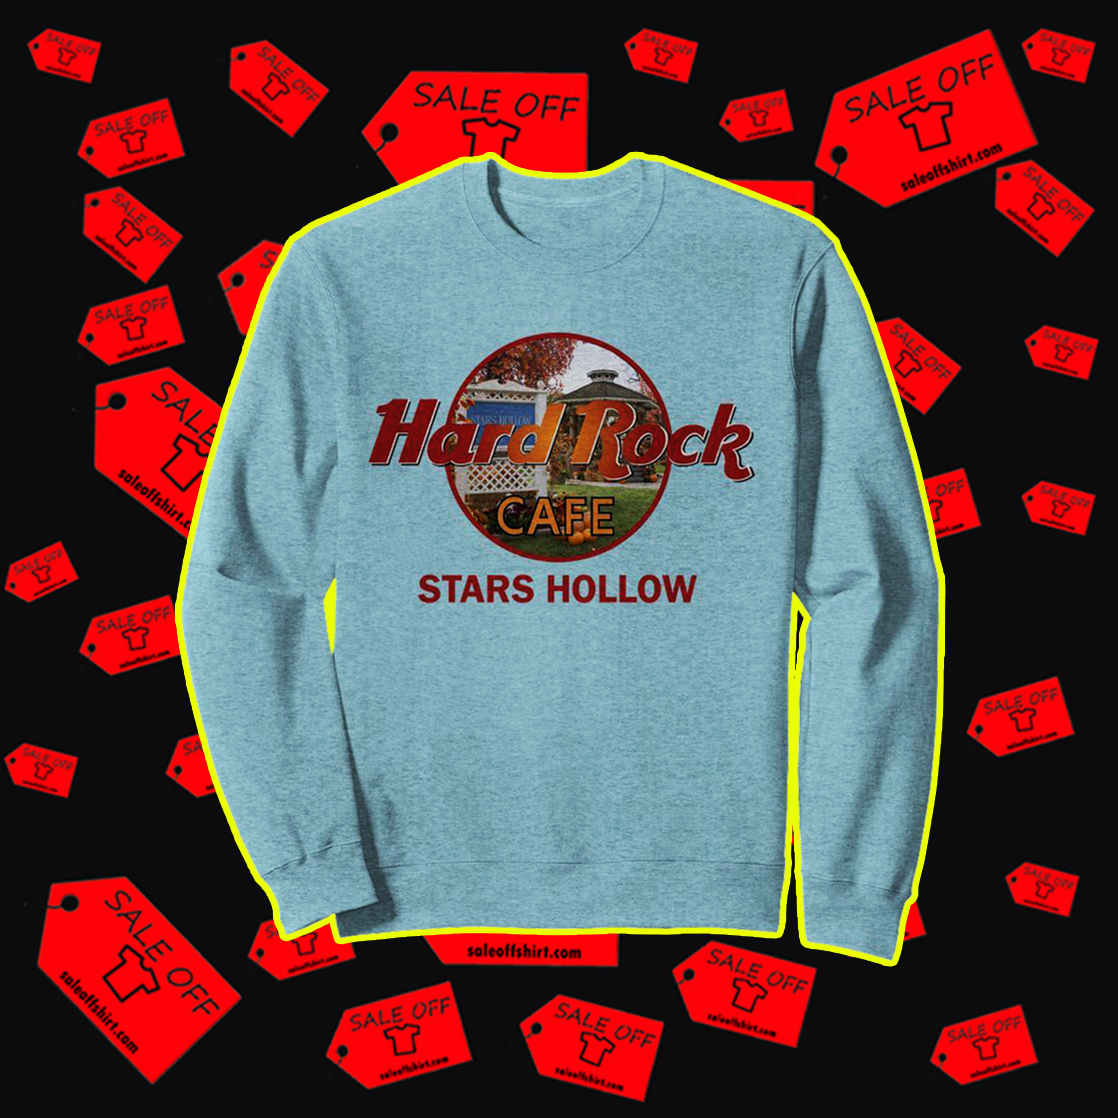 Hard rock cafe stars hollow sweatshirt